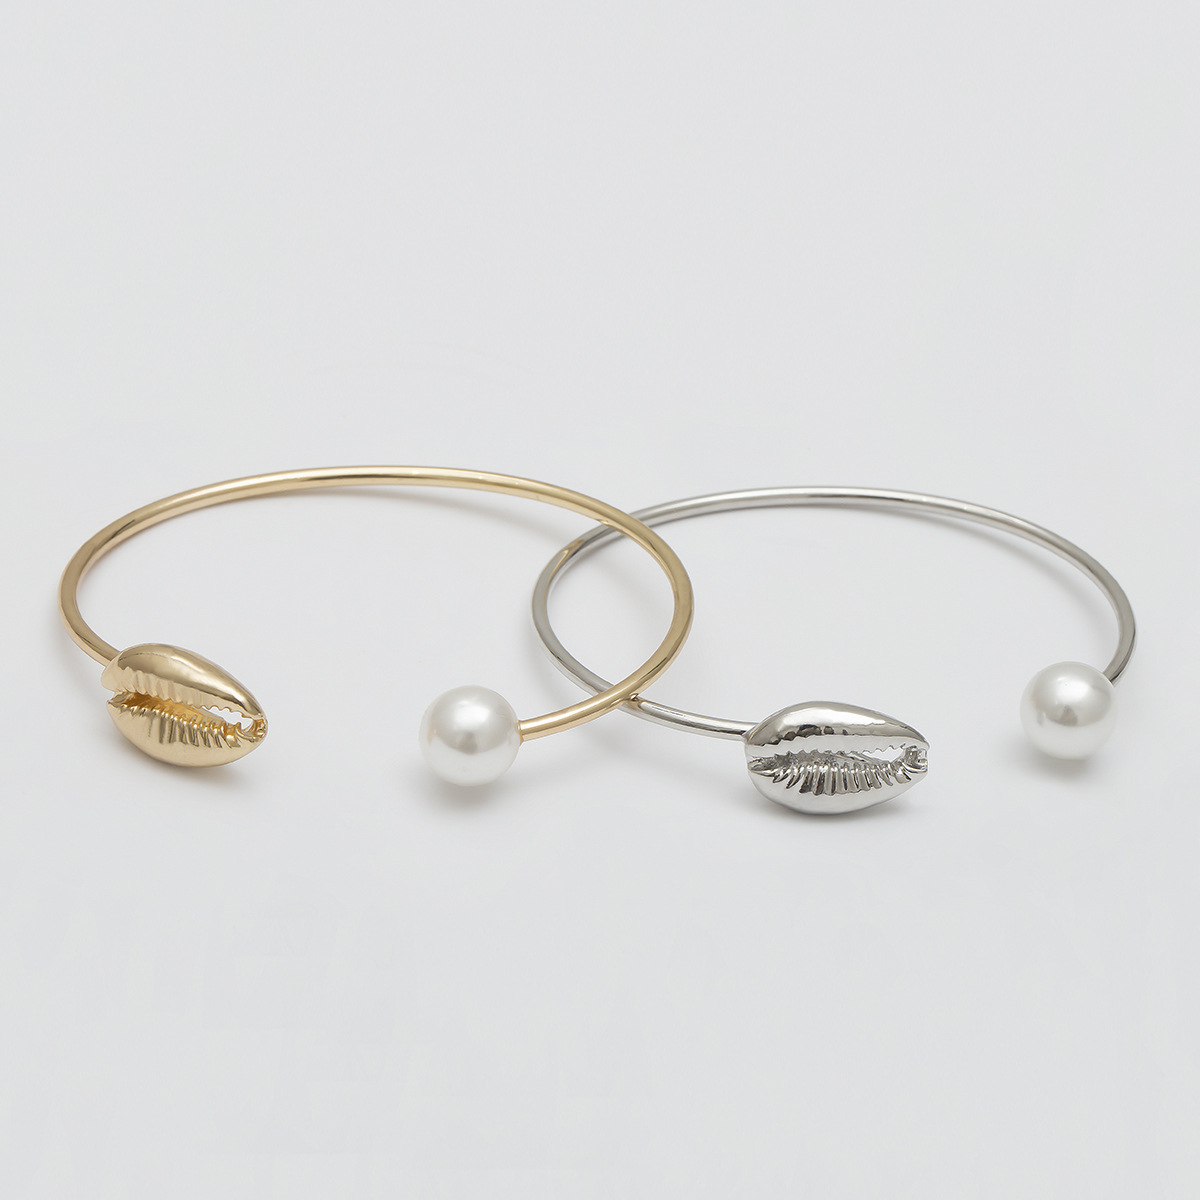 Gold Color Cowrie Shell Bracelets for Women Pearl Beads Charm Cuff Opening Bracelet Bohemian Beach Jewelry Mujer Pulseras 3